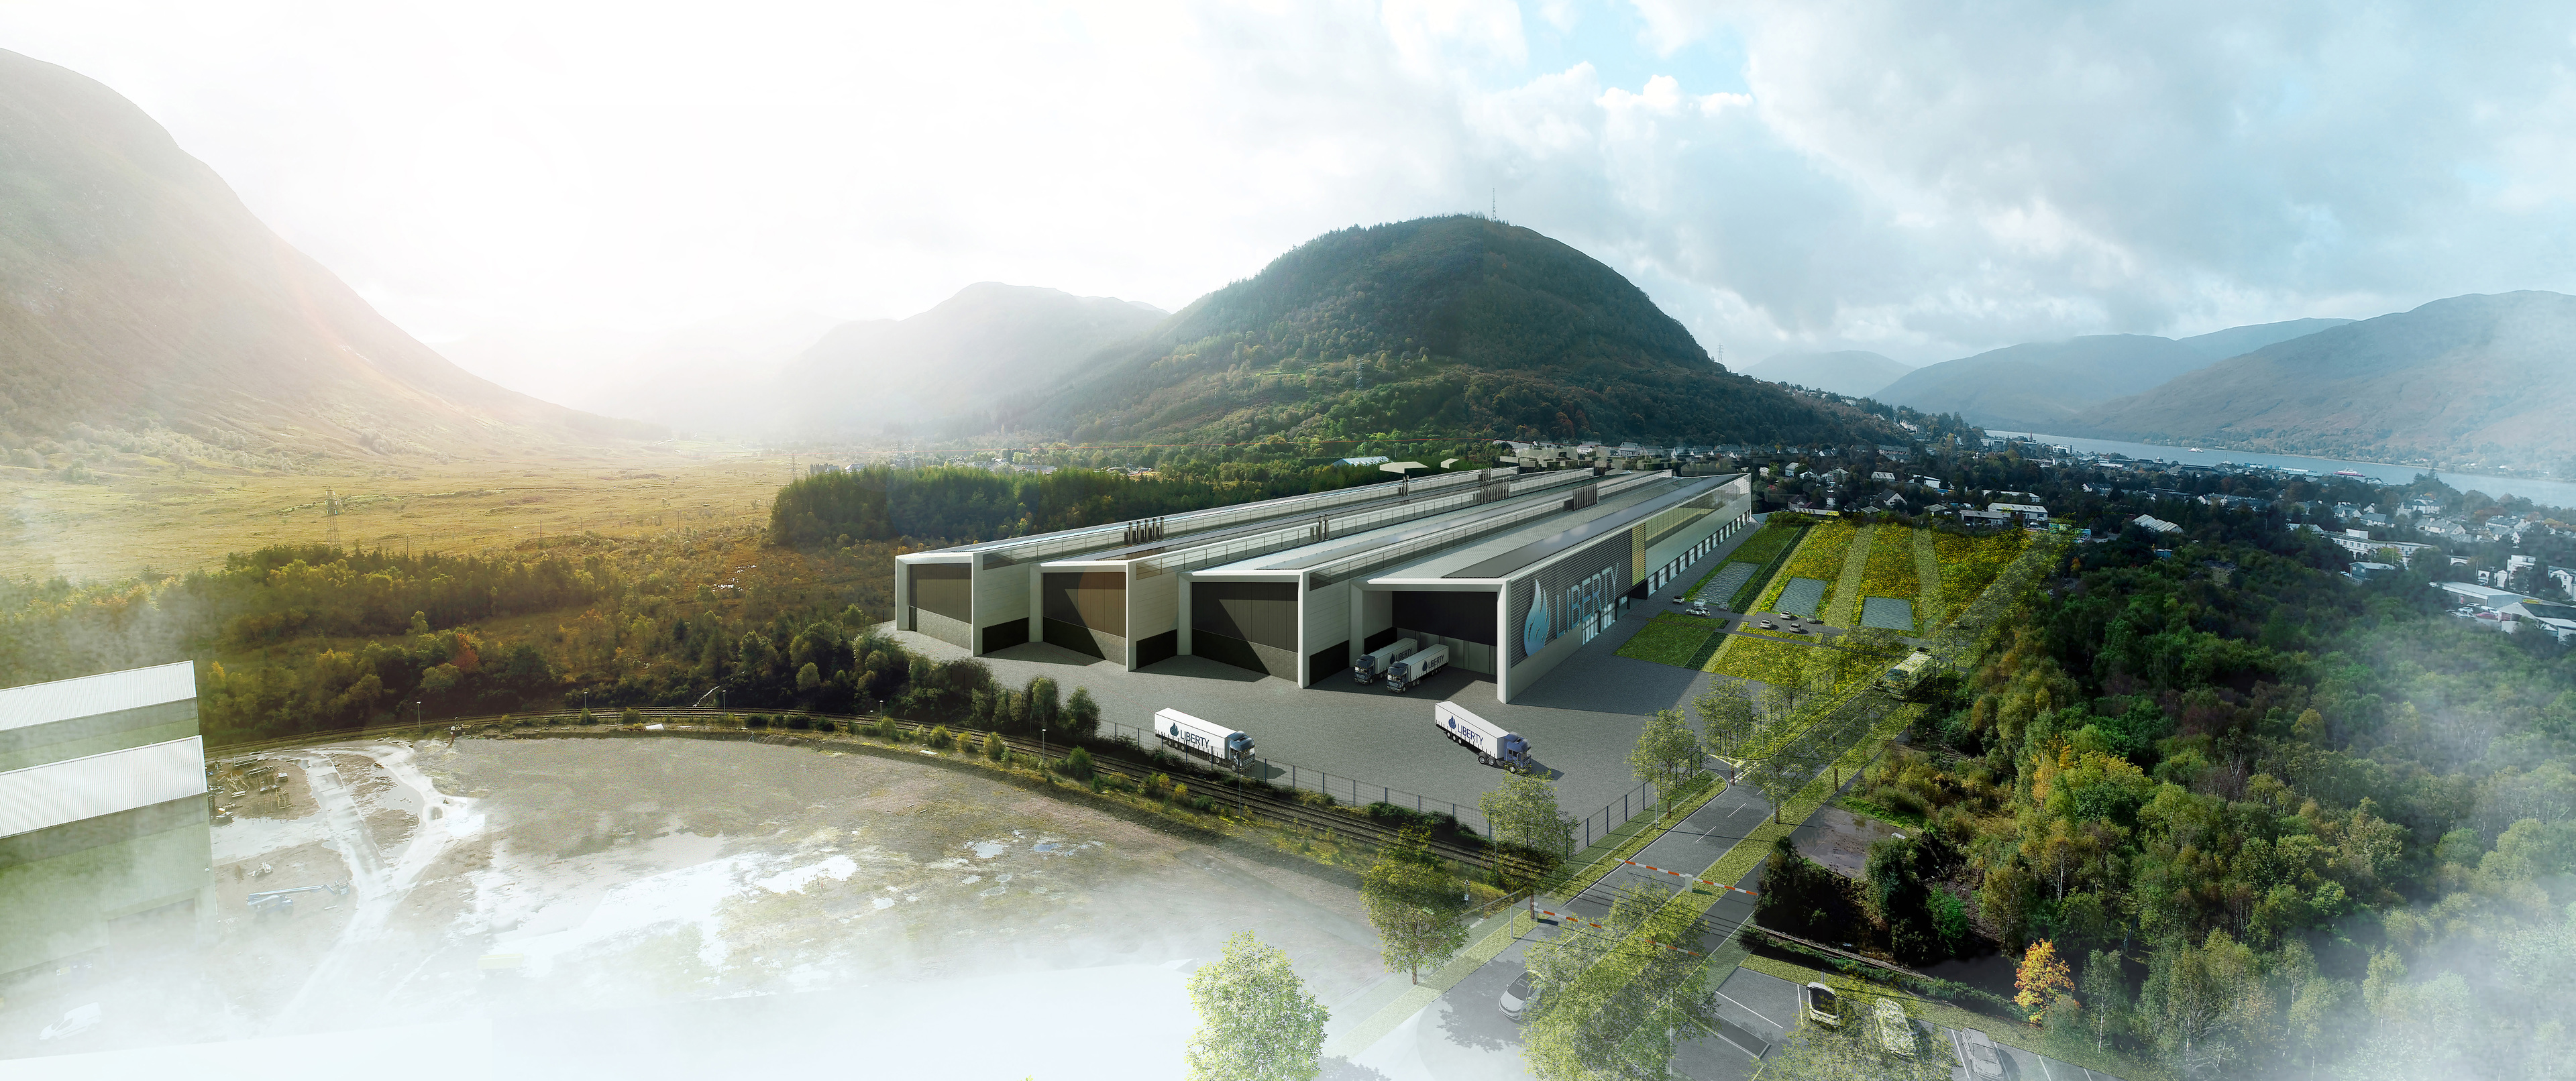 Artist impression showing the planned wheels factory in Fort William